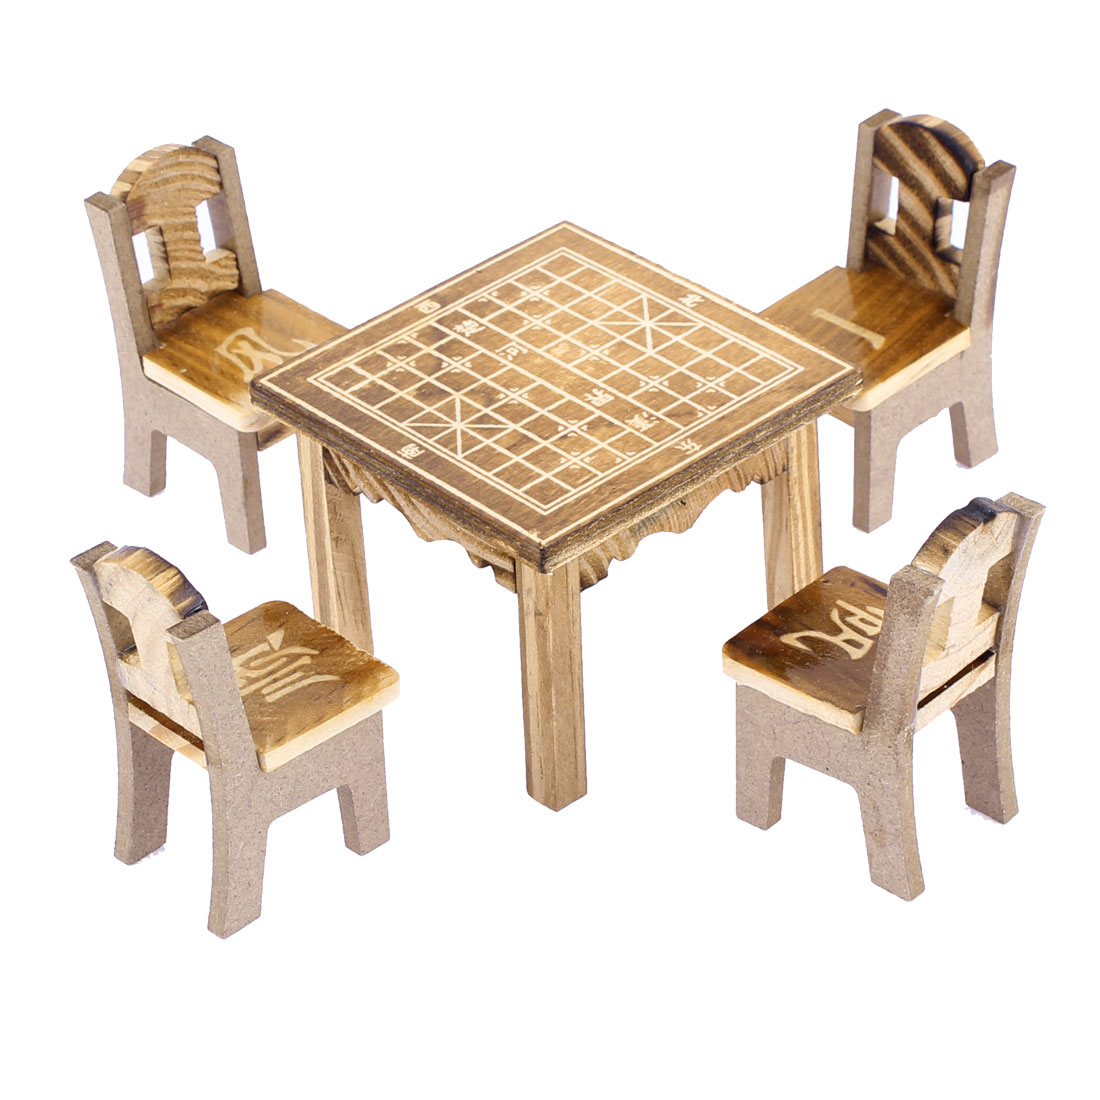 Home Office Wooden Desktop Decoration Chinese Chess Printed Craft Table Chair Set